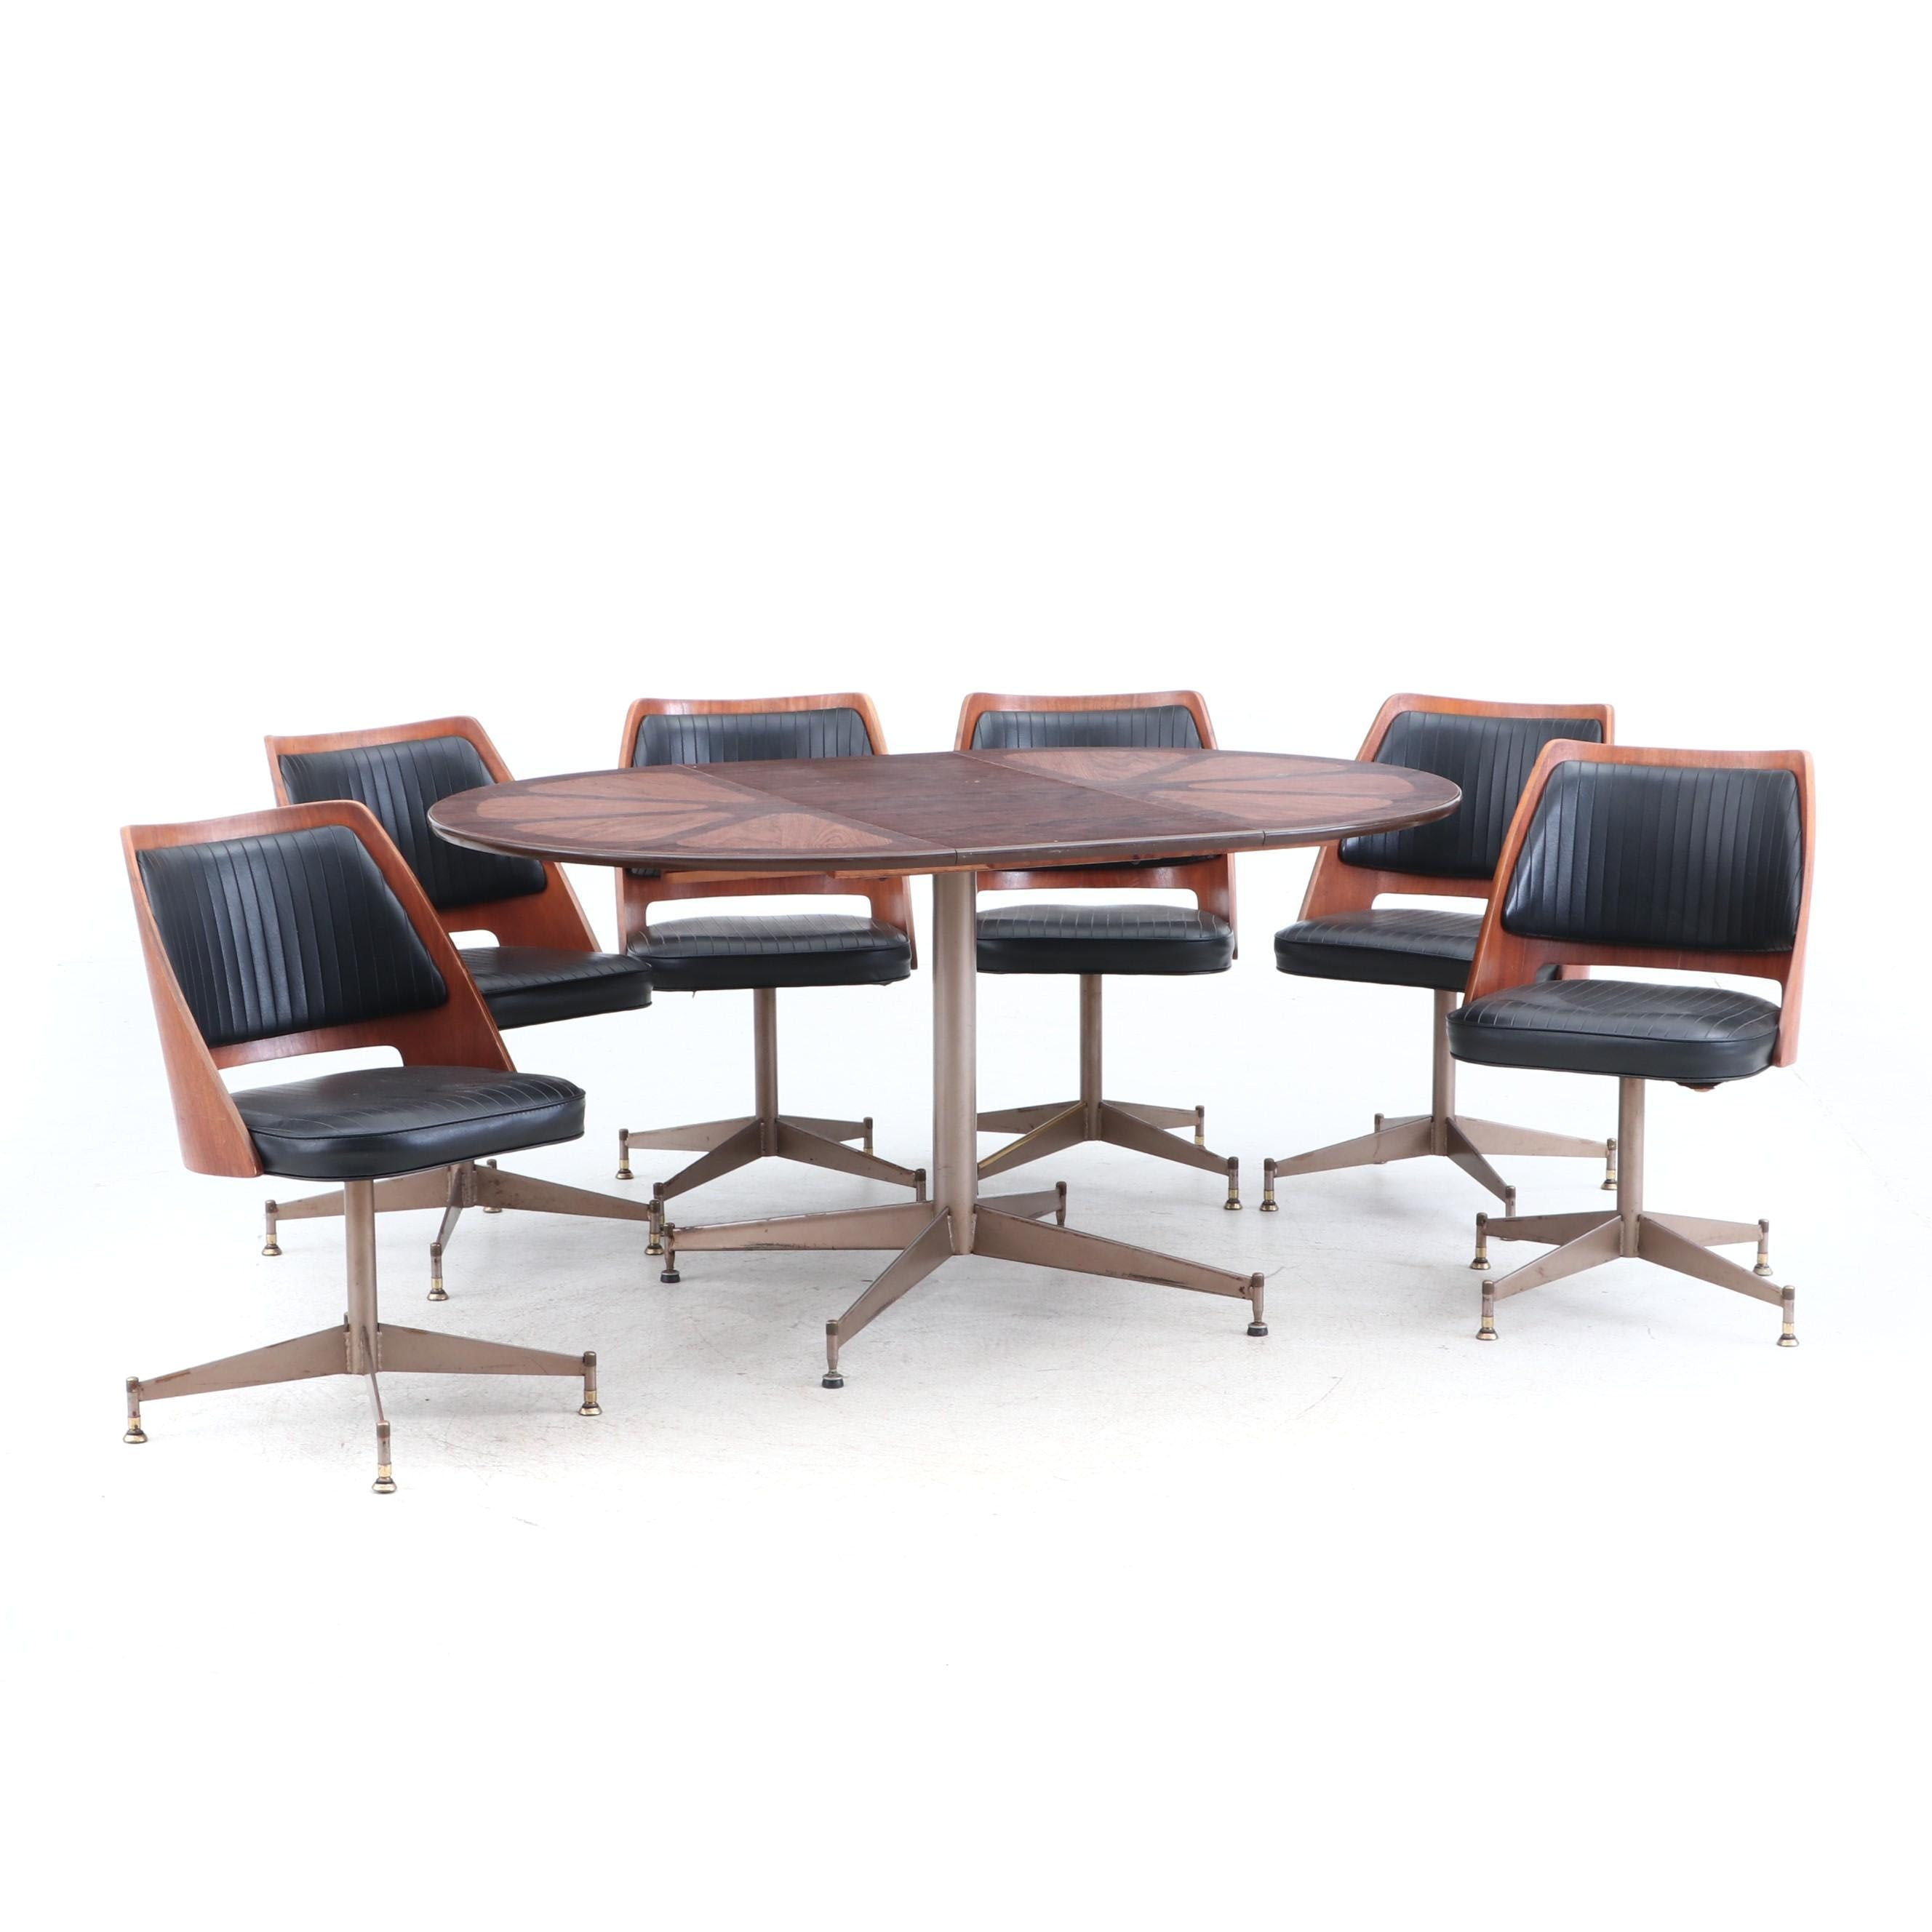 Mid Century Modern Dining Set by B. Brody Seating Co.